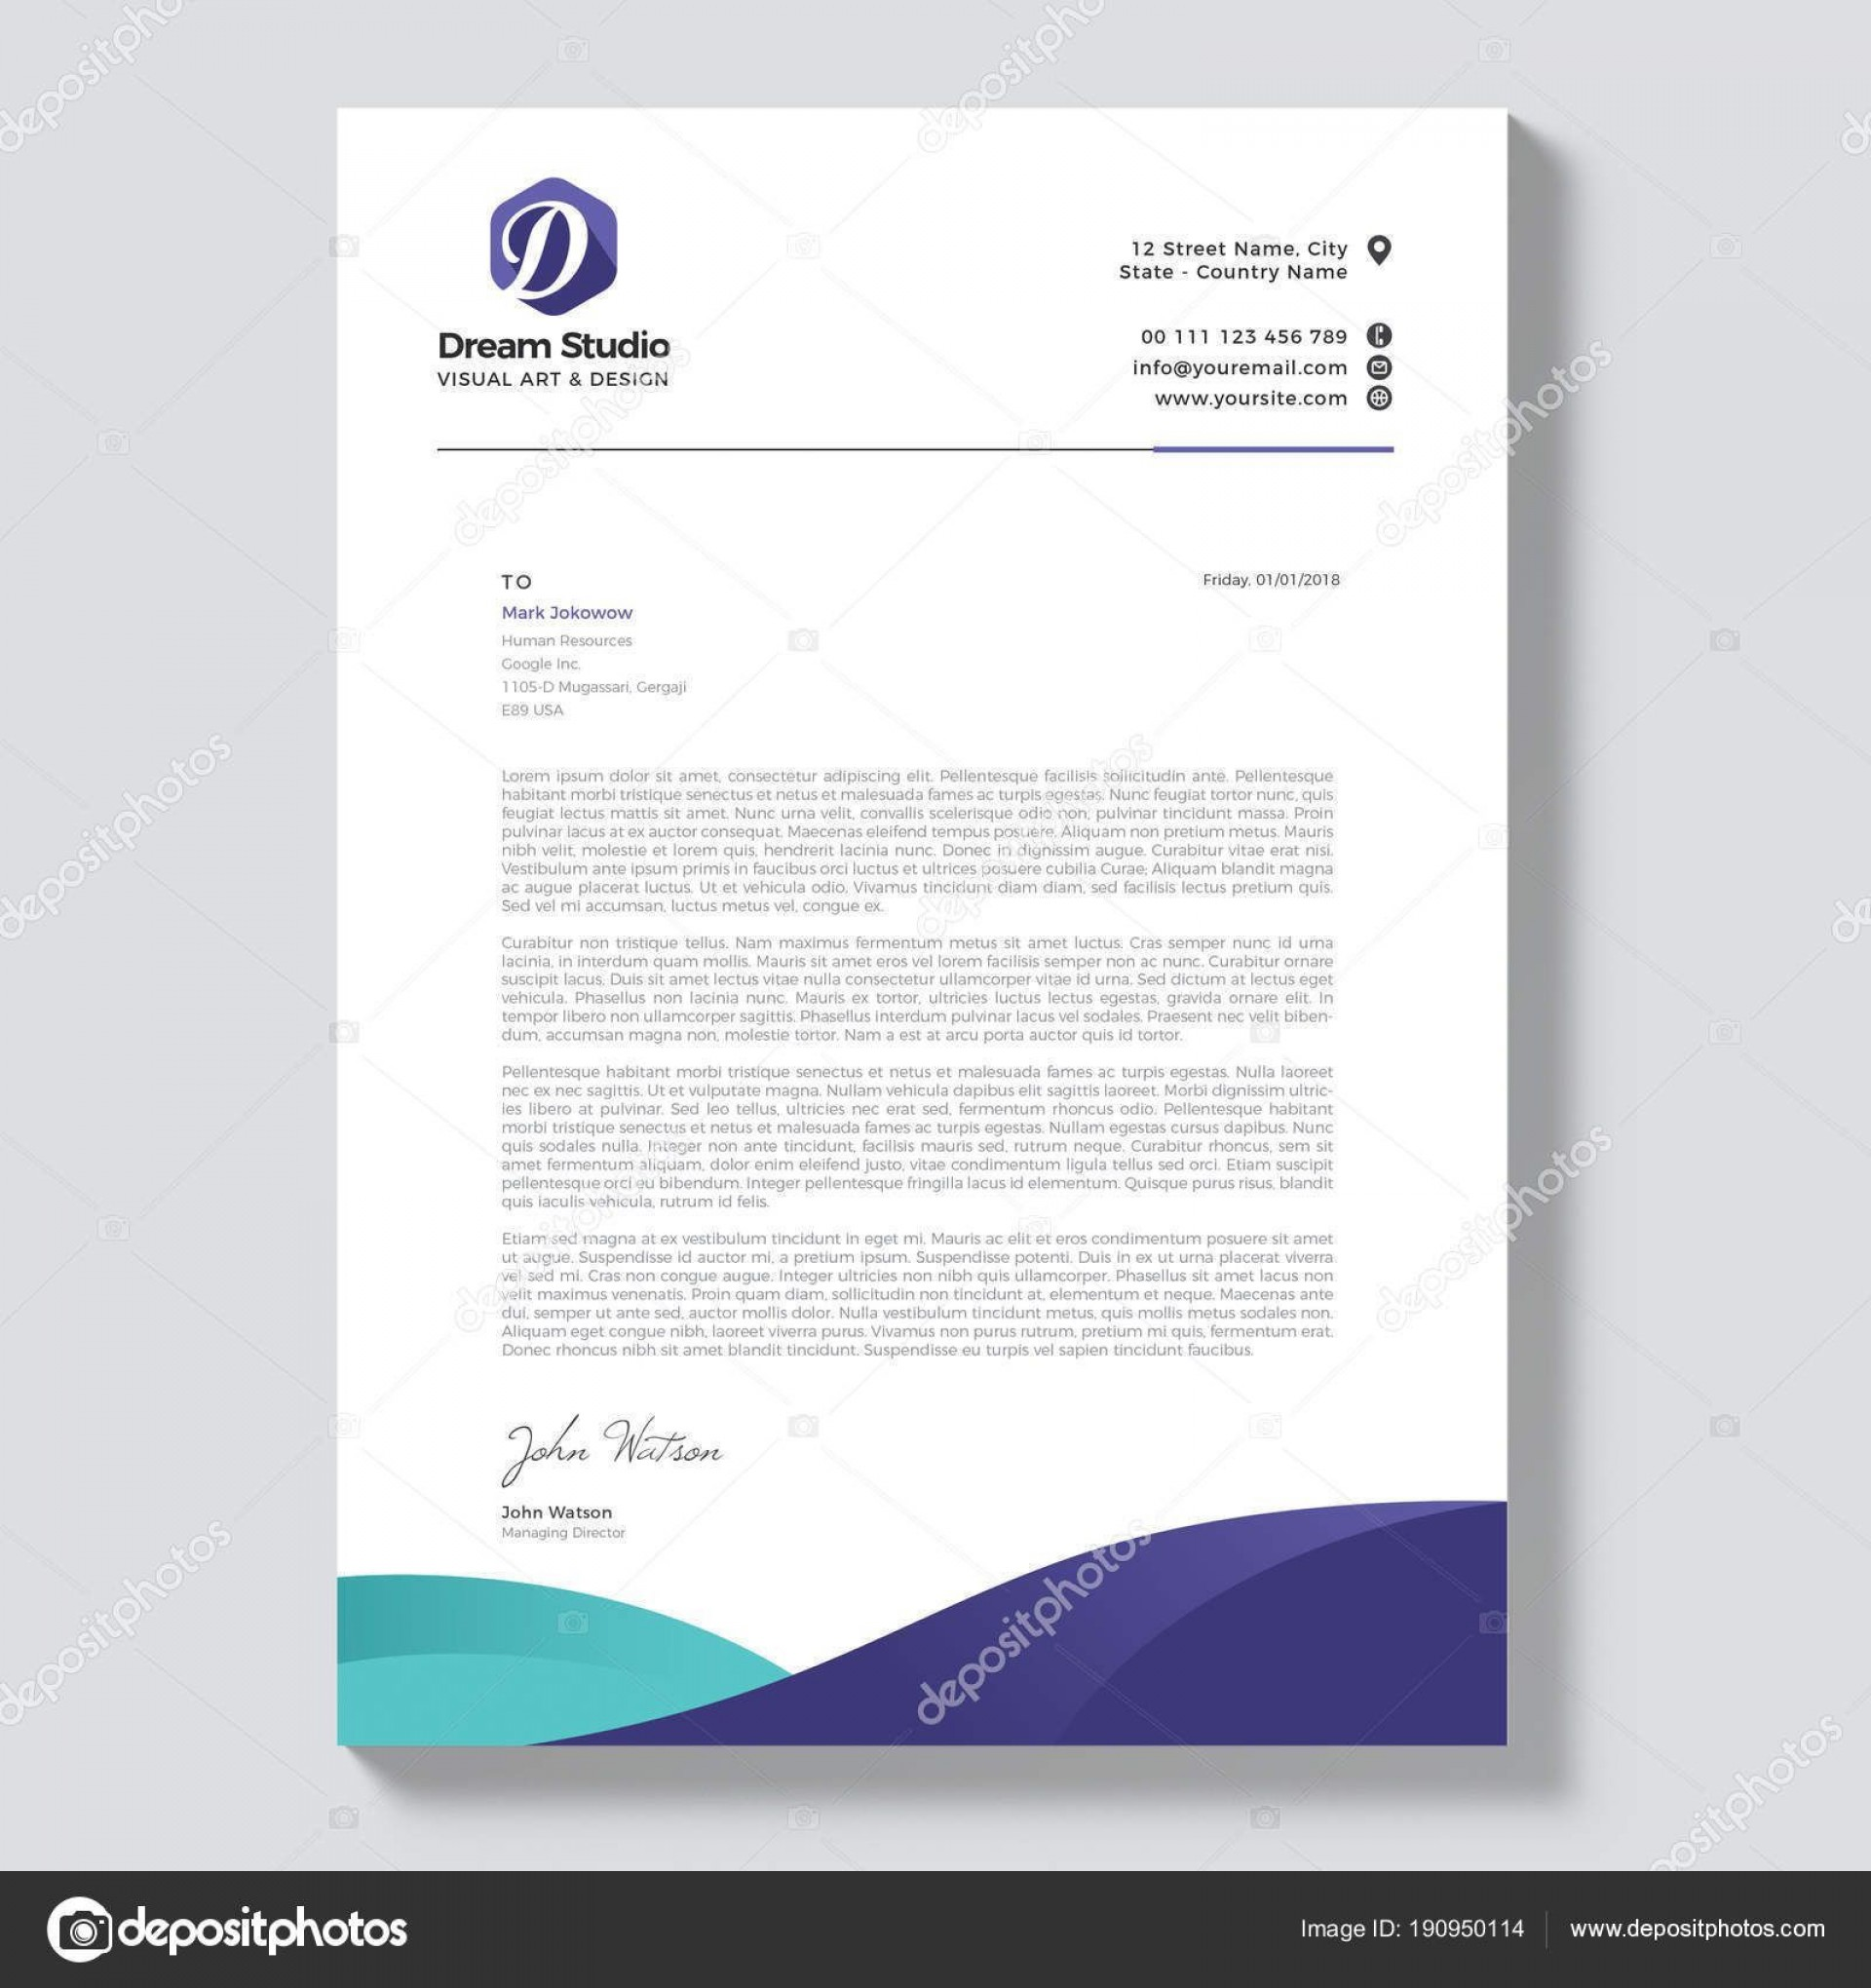 004 Astounding Sample Letterhead Template Free Download High Resolution  Professional Design In Word Format1920